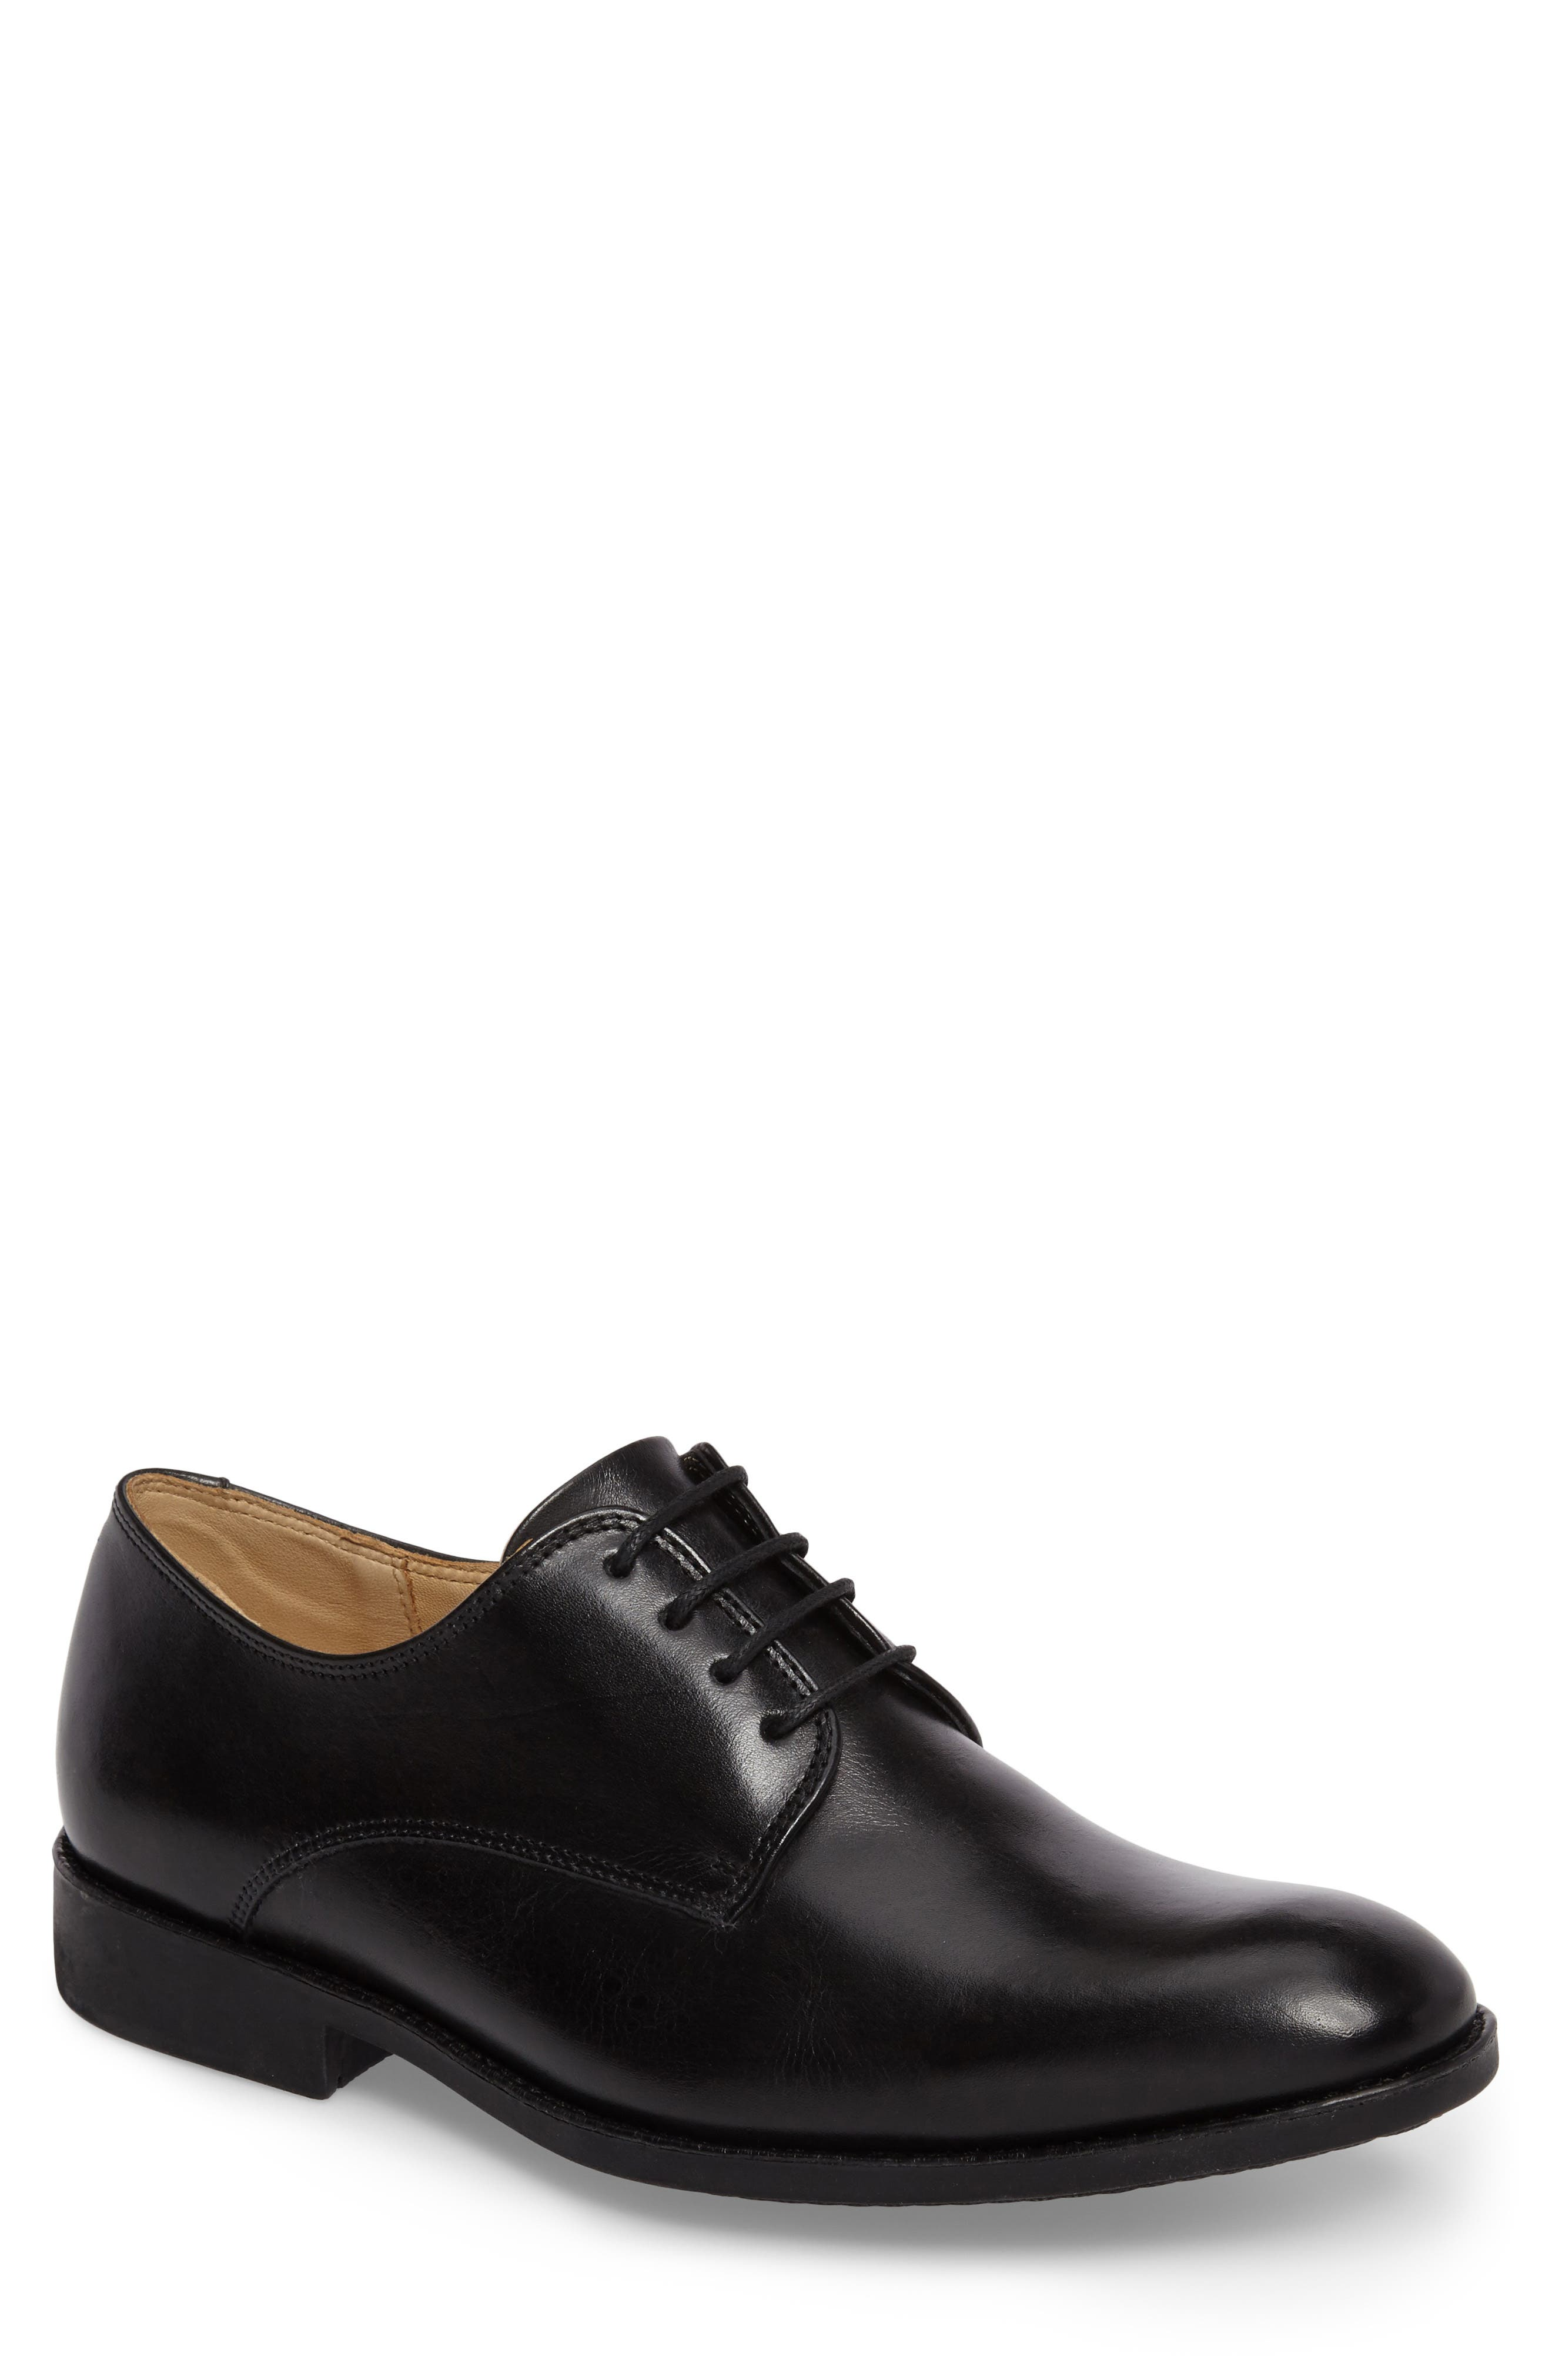 Anatomic & Co Steve Plain Toe Derby (Men)